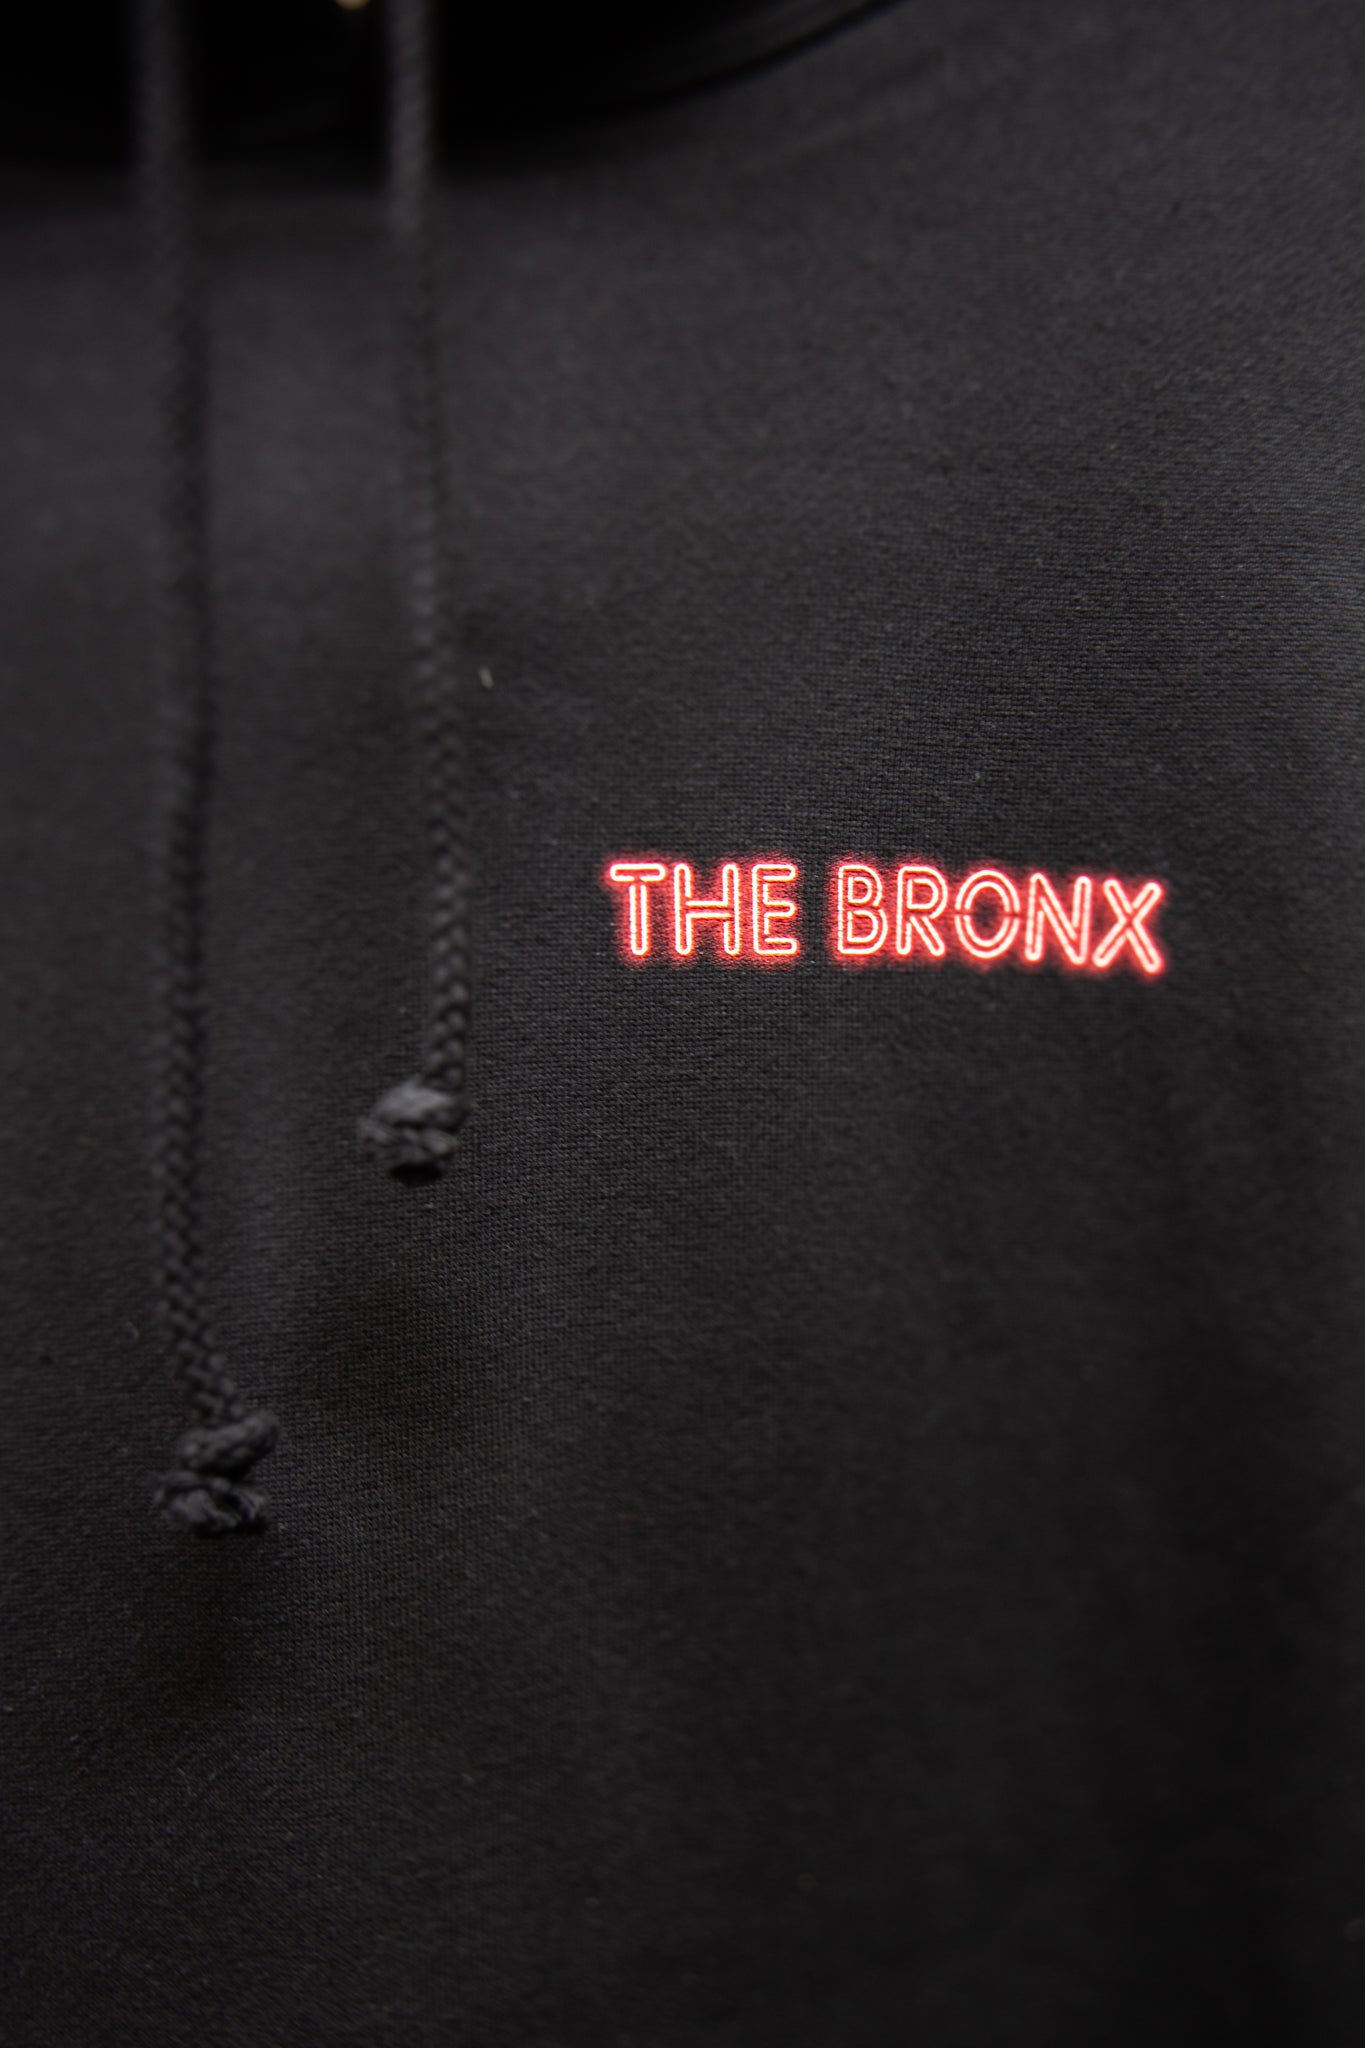 If It Wasn't For The Bronx - Black Hoodie